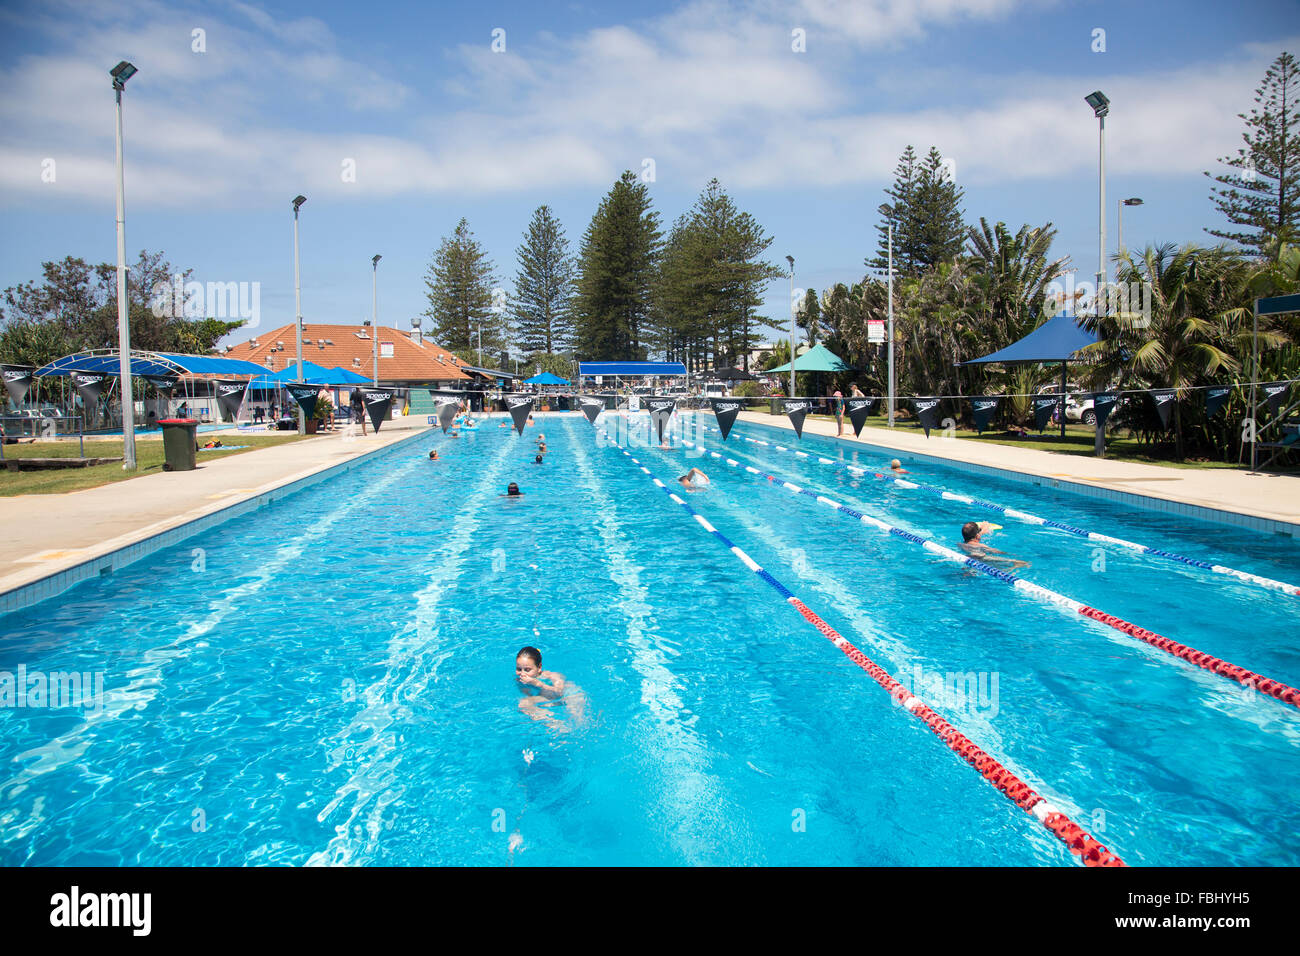 Byron bay public open air olympic size swimming pool near main stock photo 93207889 alamy for Swimming pools open today near me